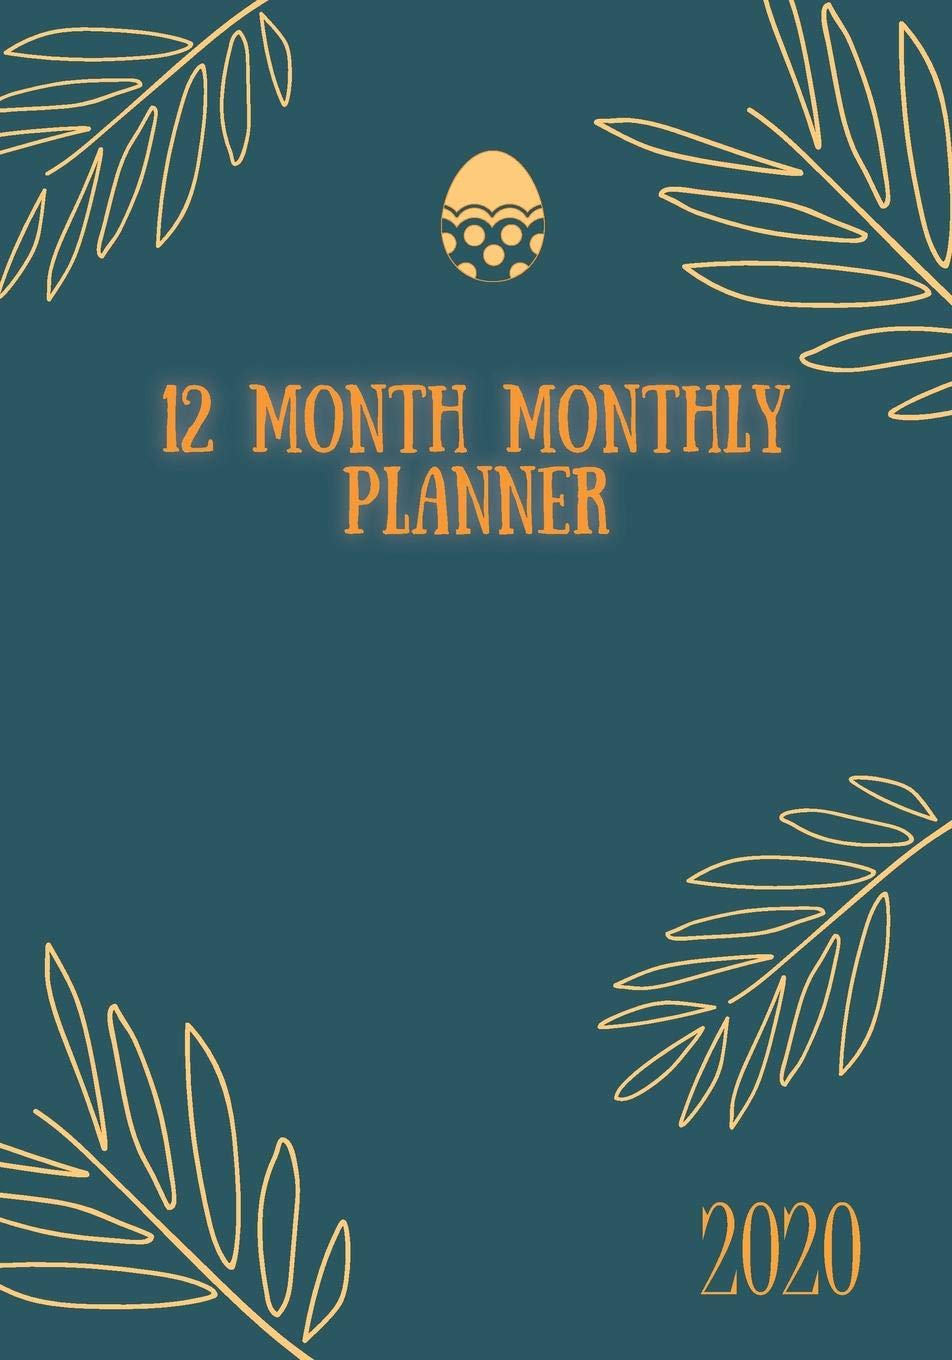 Best Monthly Planner 2020 12 Month Monthly Planner: 2020 | Fully Formatted | With 2020